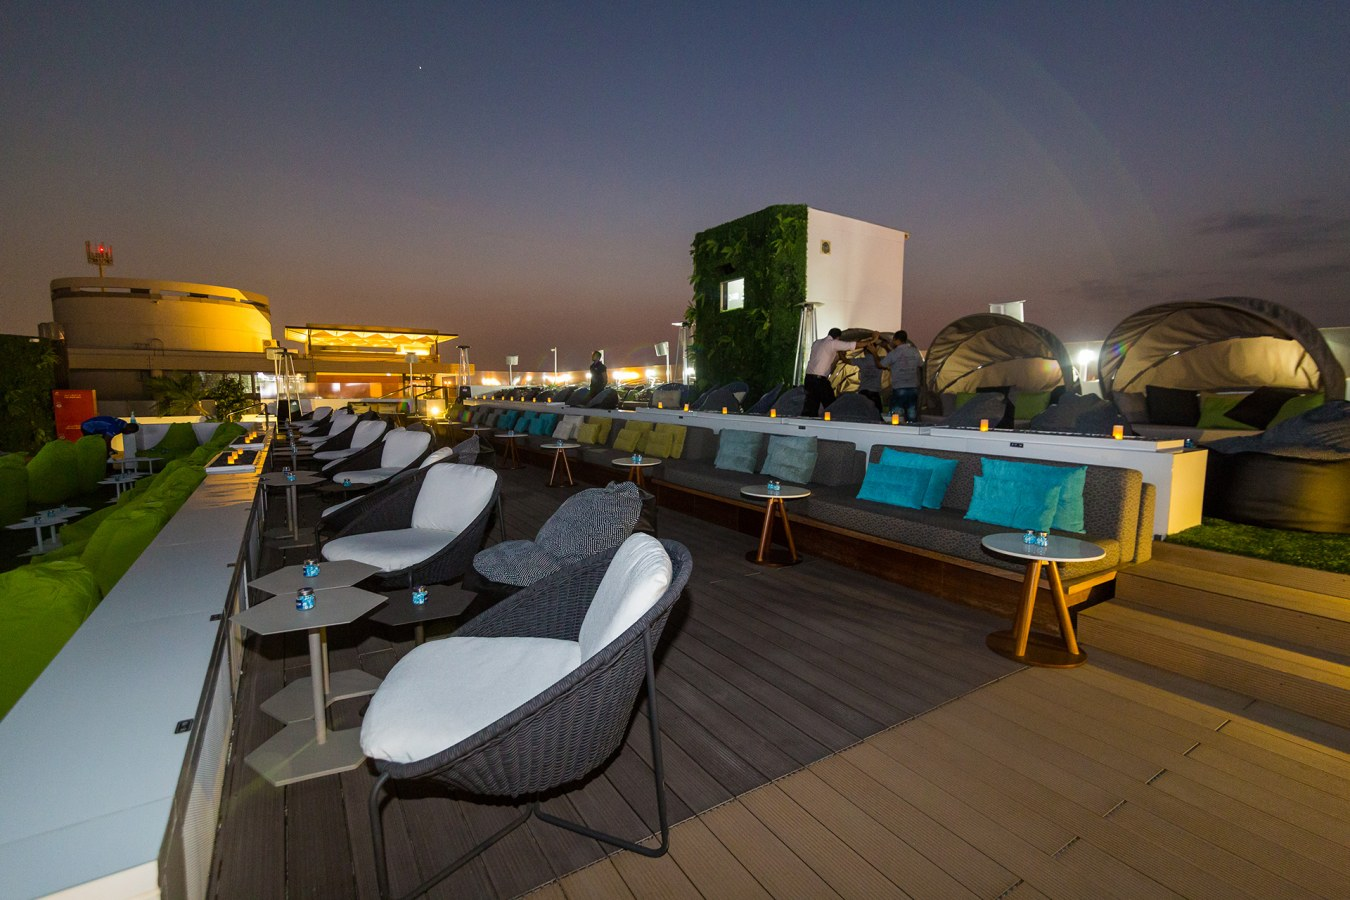 Bayut.com Recommends Vox Outdoor Cinema at Galleria